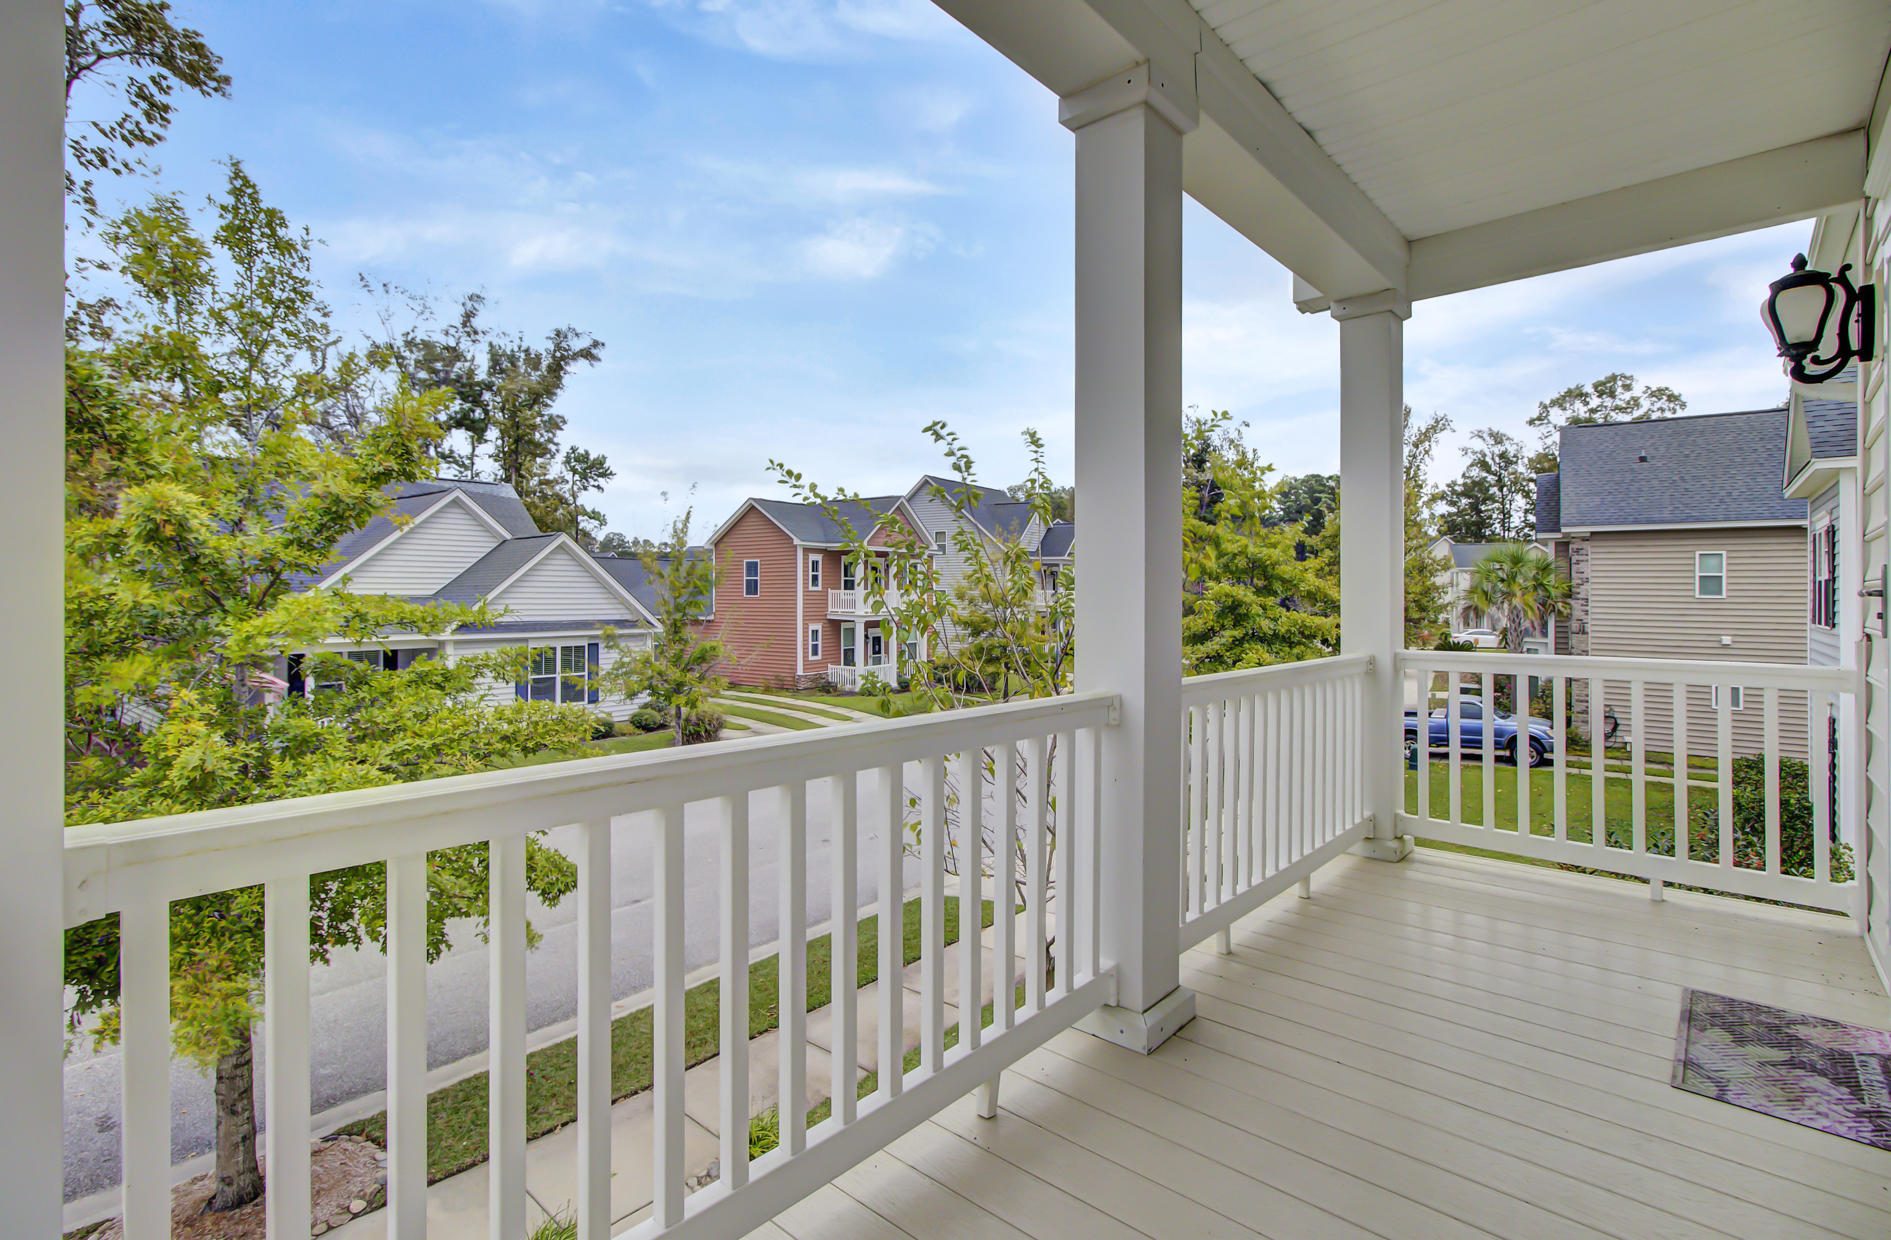 Boltons Landing Homes For Sale - 3034 Scuba, Charleston, SC - 4